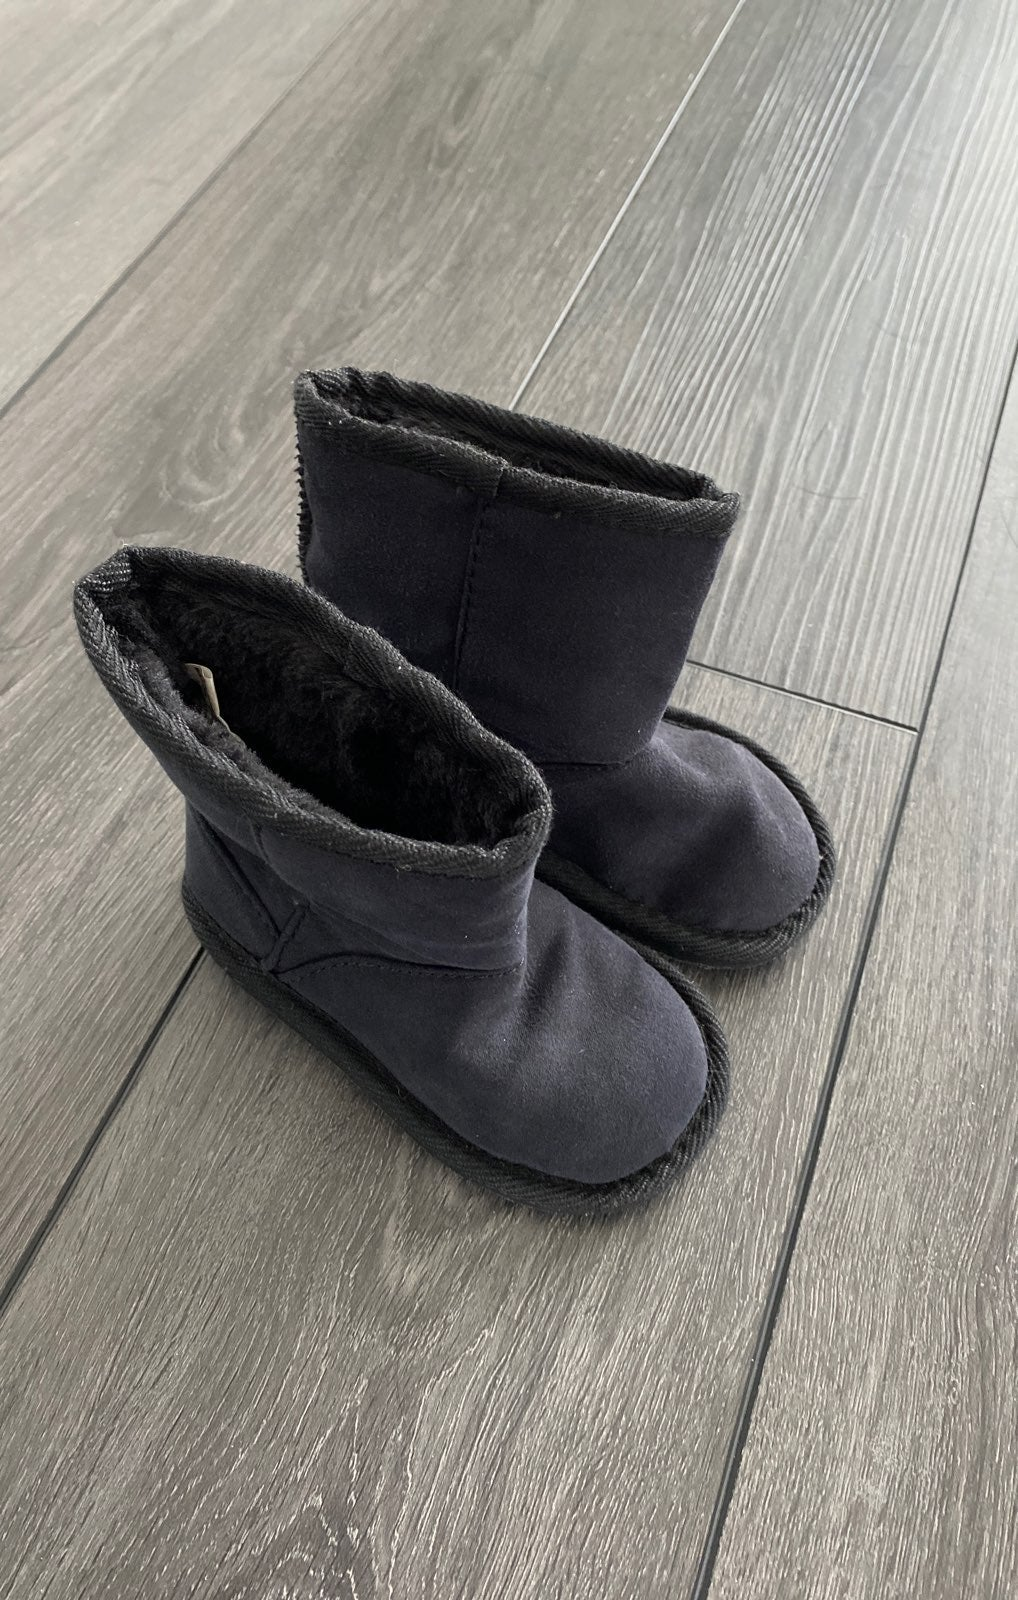 Toddler size 6 UGG style black boots